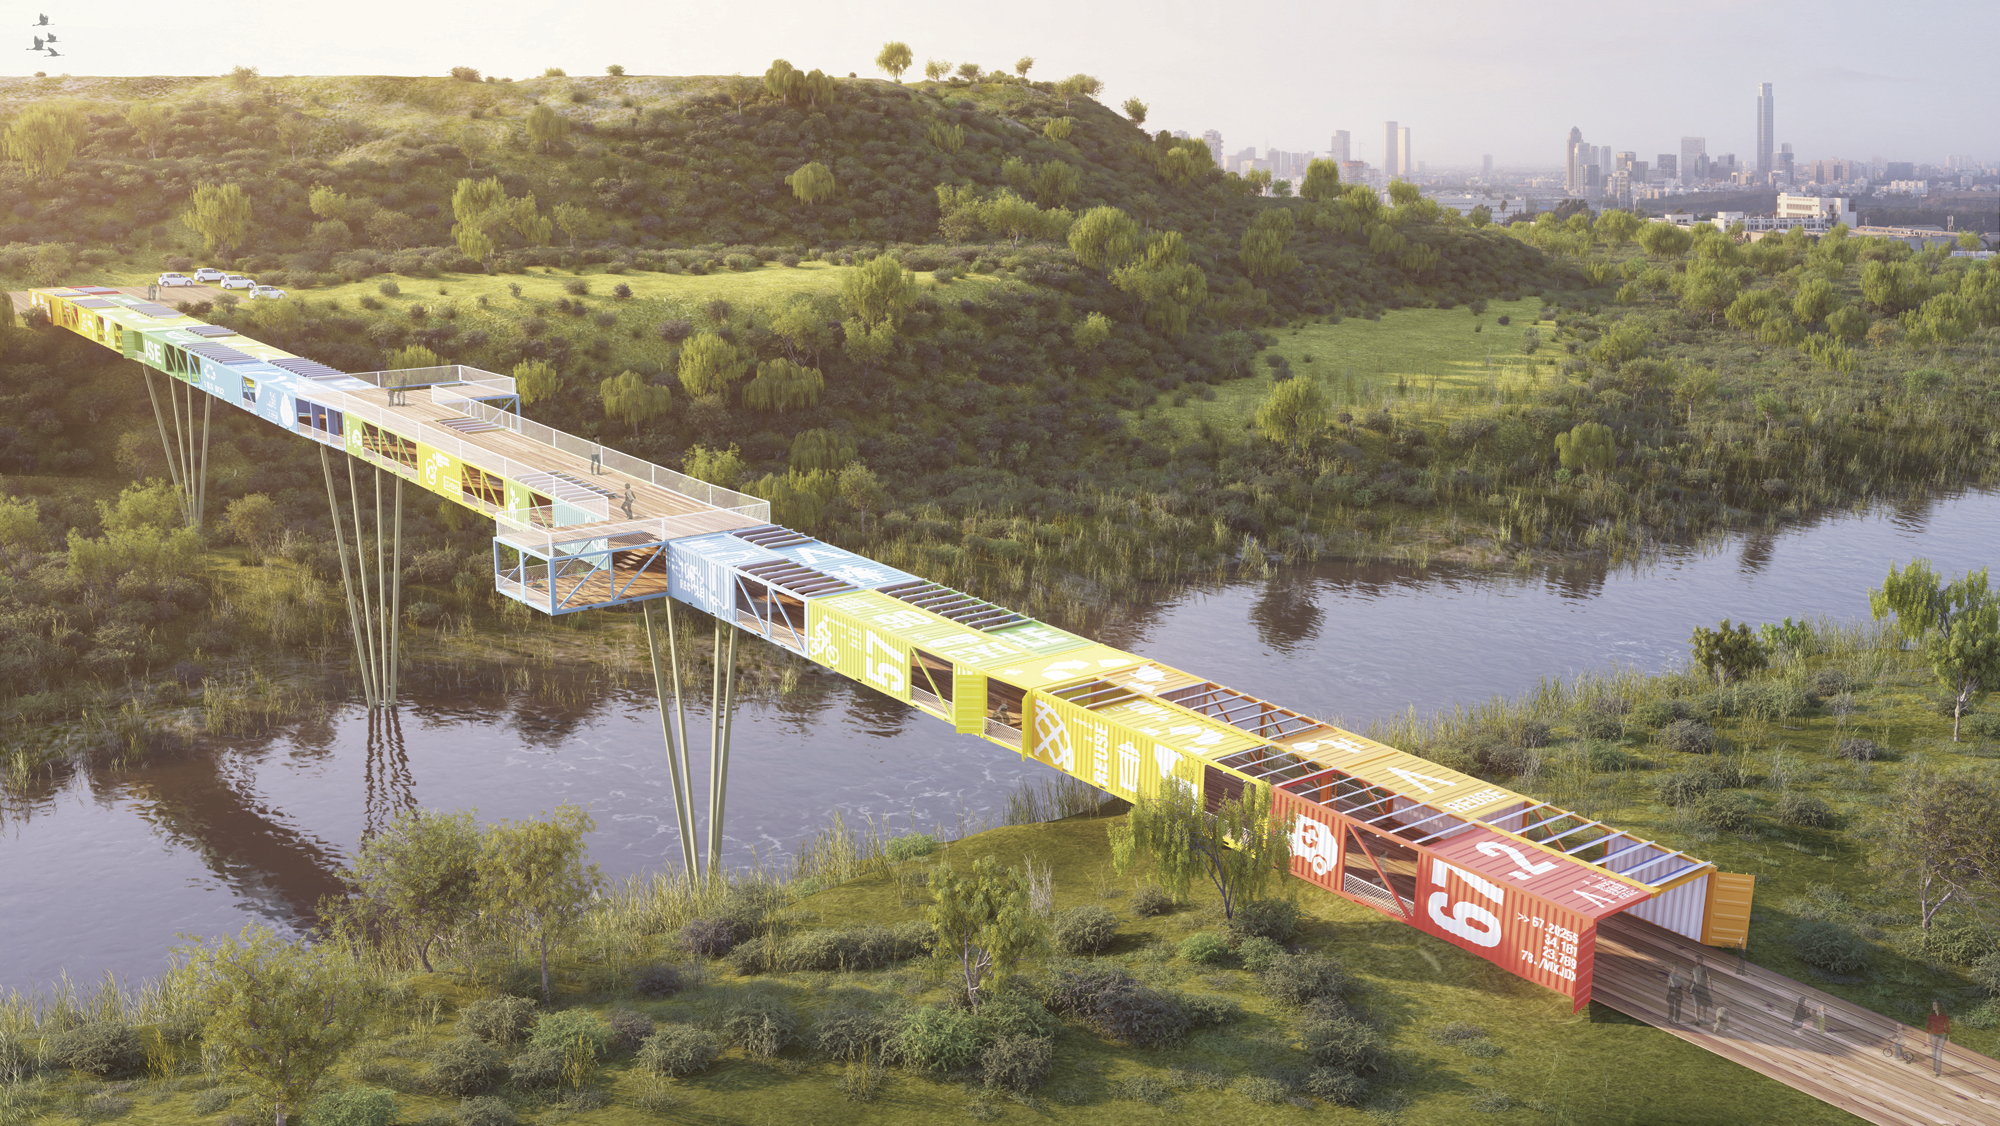 Puente Econtainer  / Yoav Messer Architects, Cortesia de Yoav Messer Architects